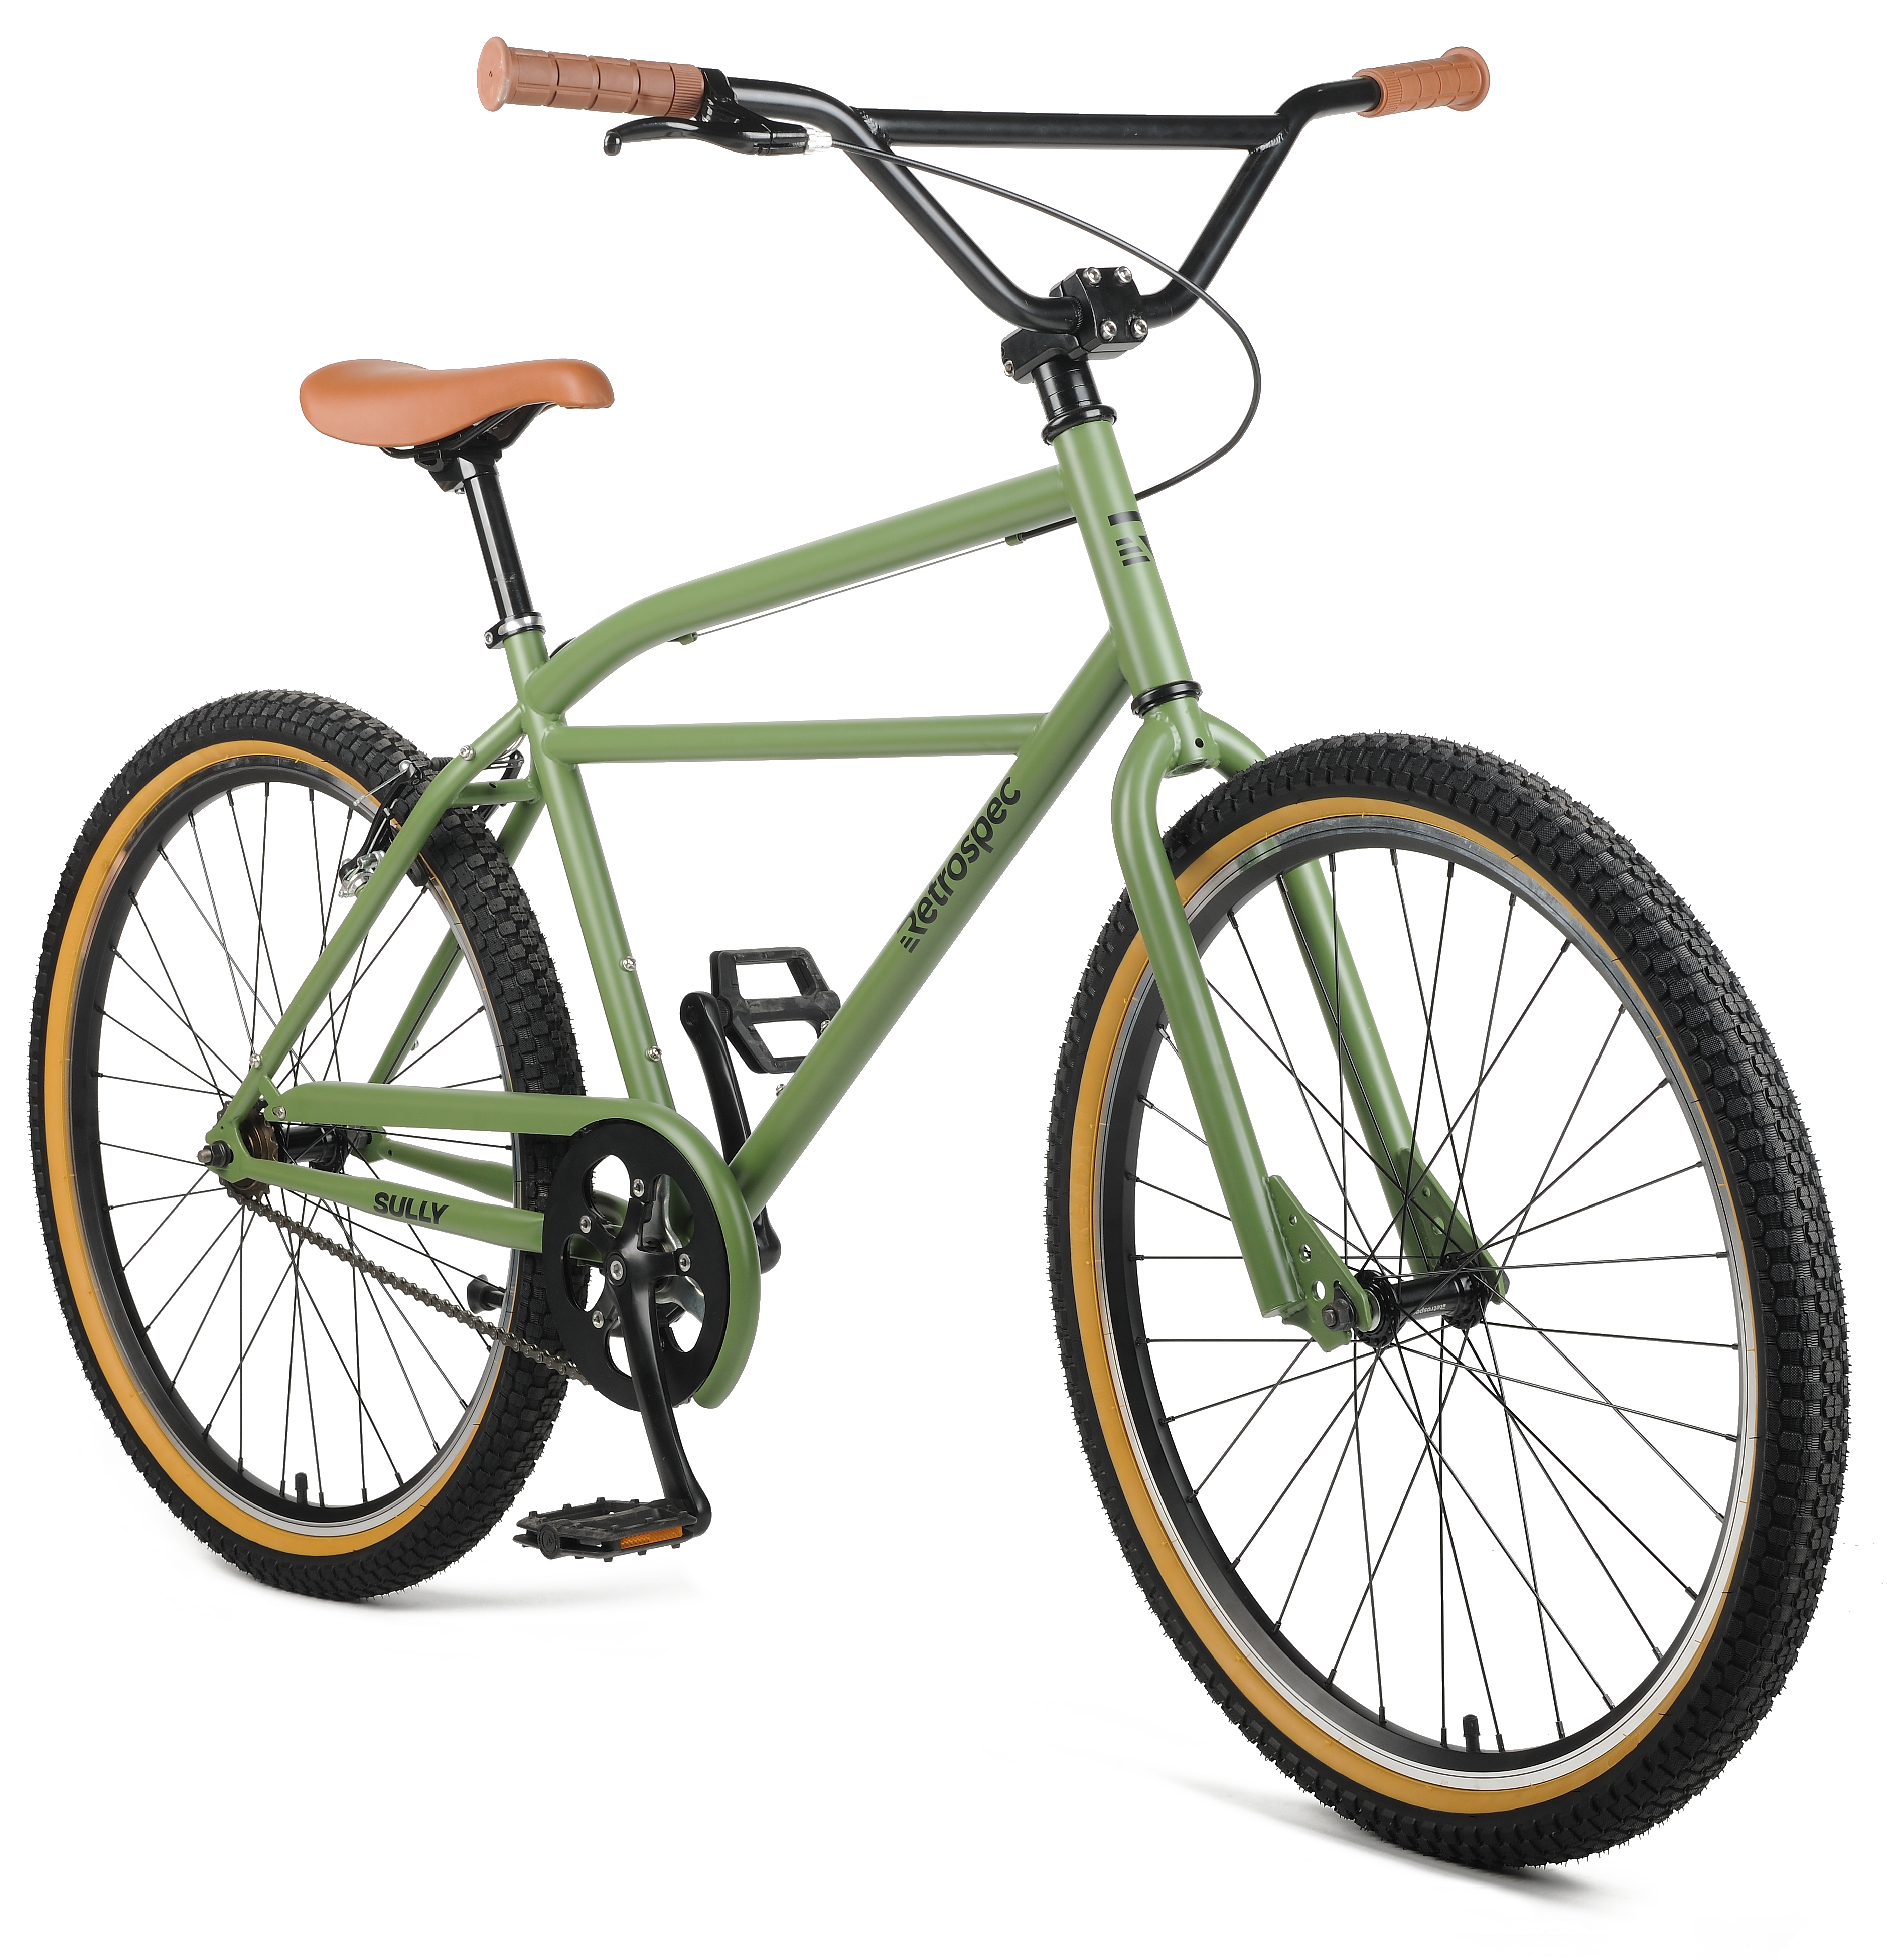 Retrospec Sully Klunker Cruiser Bike with Handbuilt Hi-Tensile Steel Frame and Kenda K-Rad BMX Tires